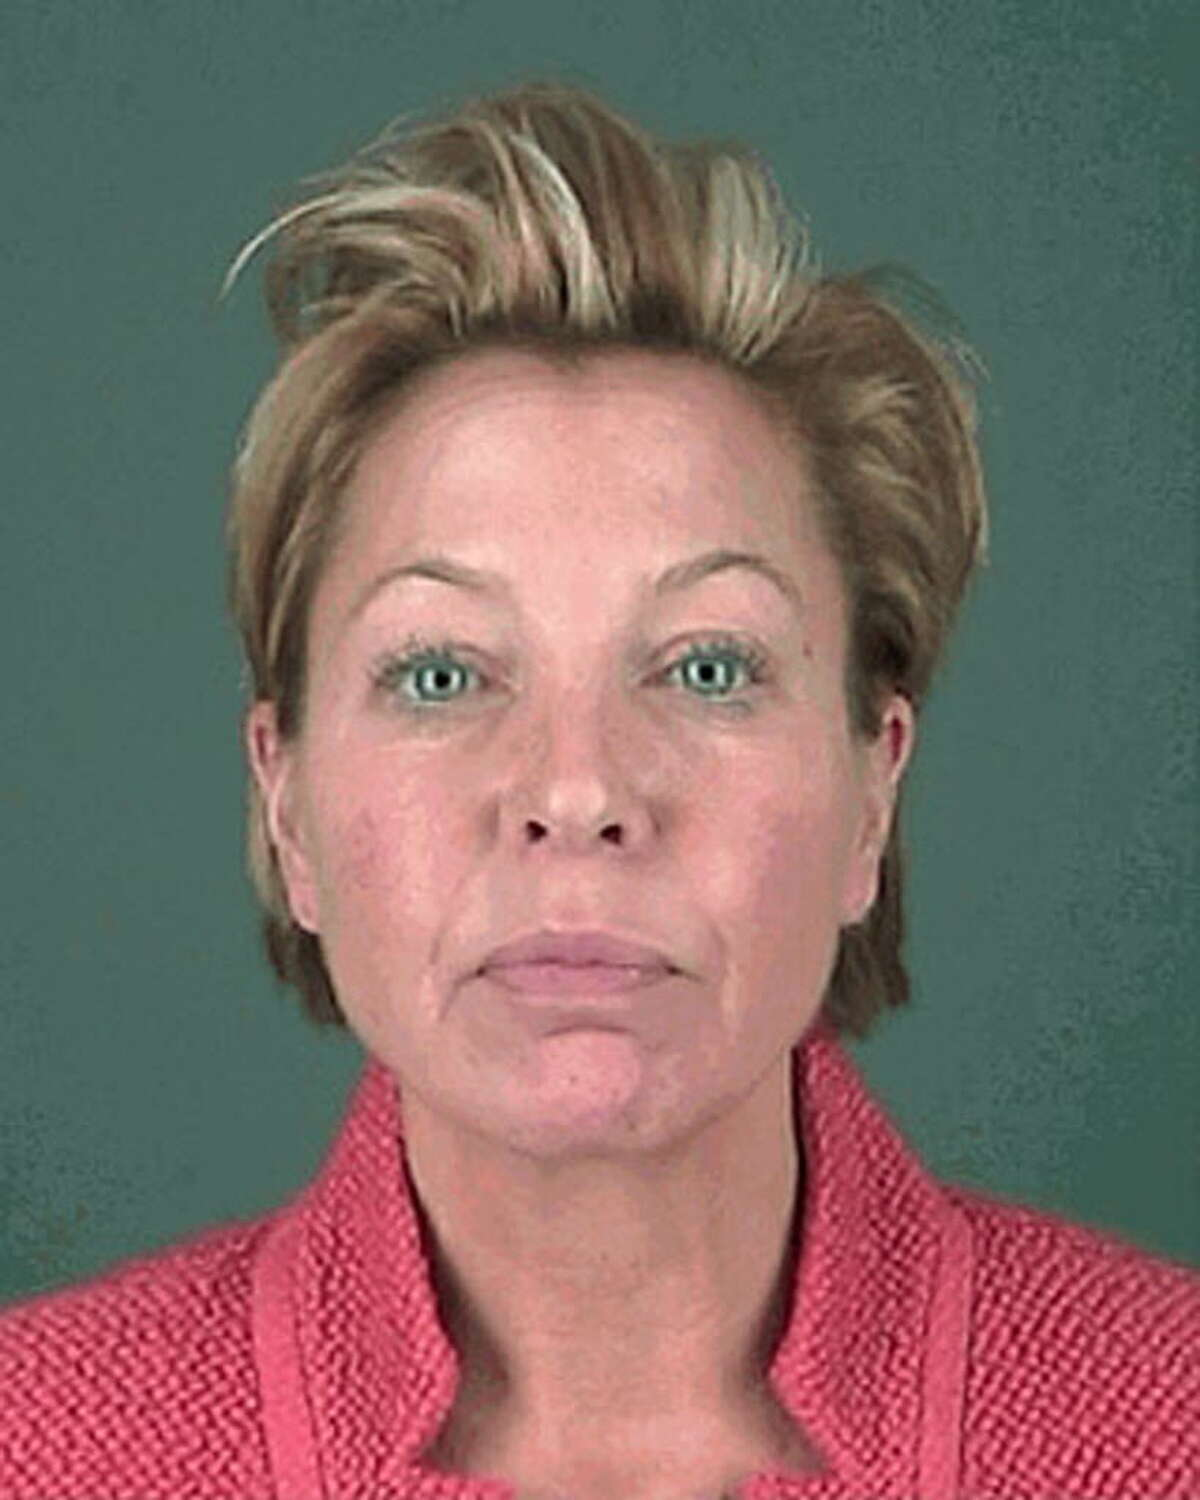 Alison Lee, the estranged wife of U.S. Rep. Maurice Hinchey, D-Hurley, was expected in Albany City Court on Friday, Aug. 10, 2012. (Albany Police Department)